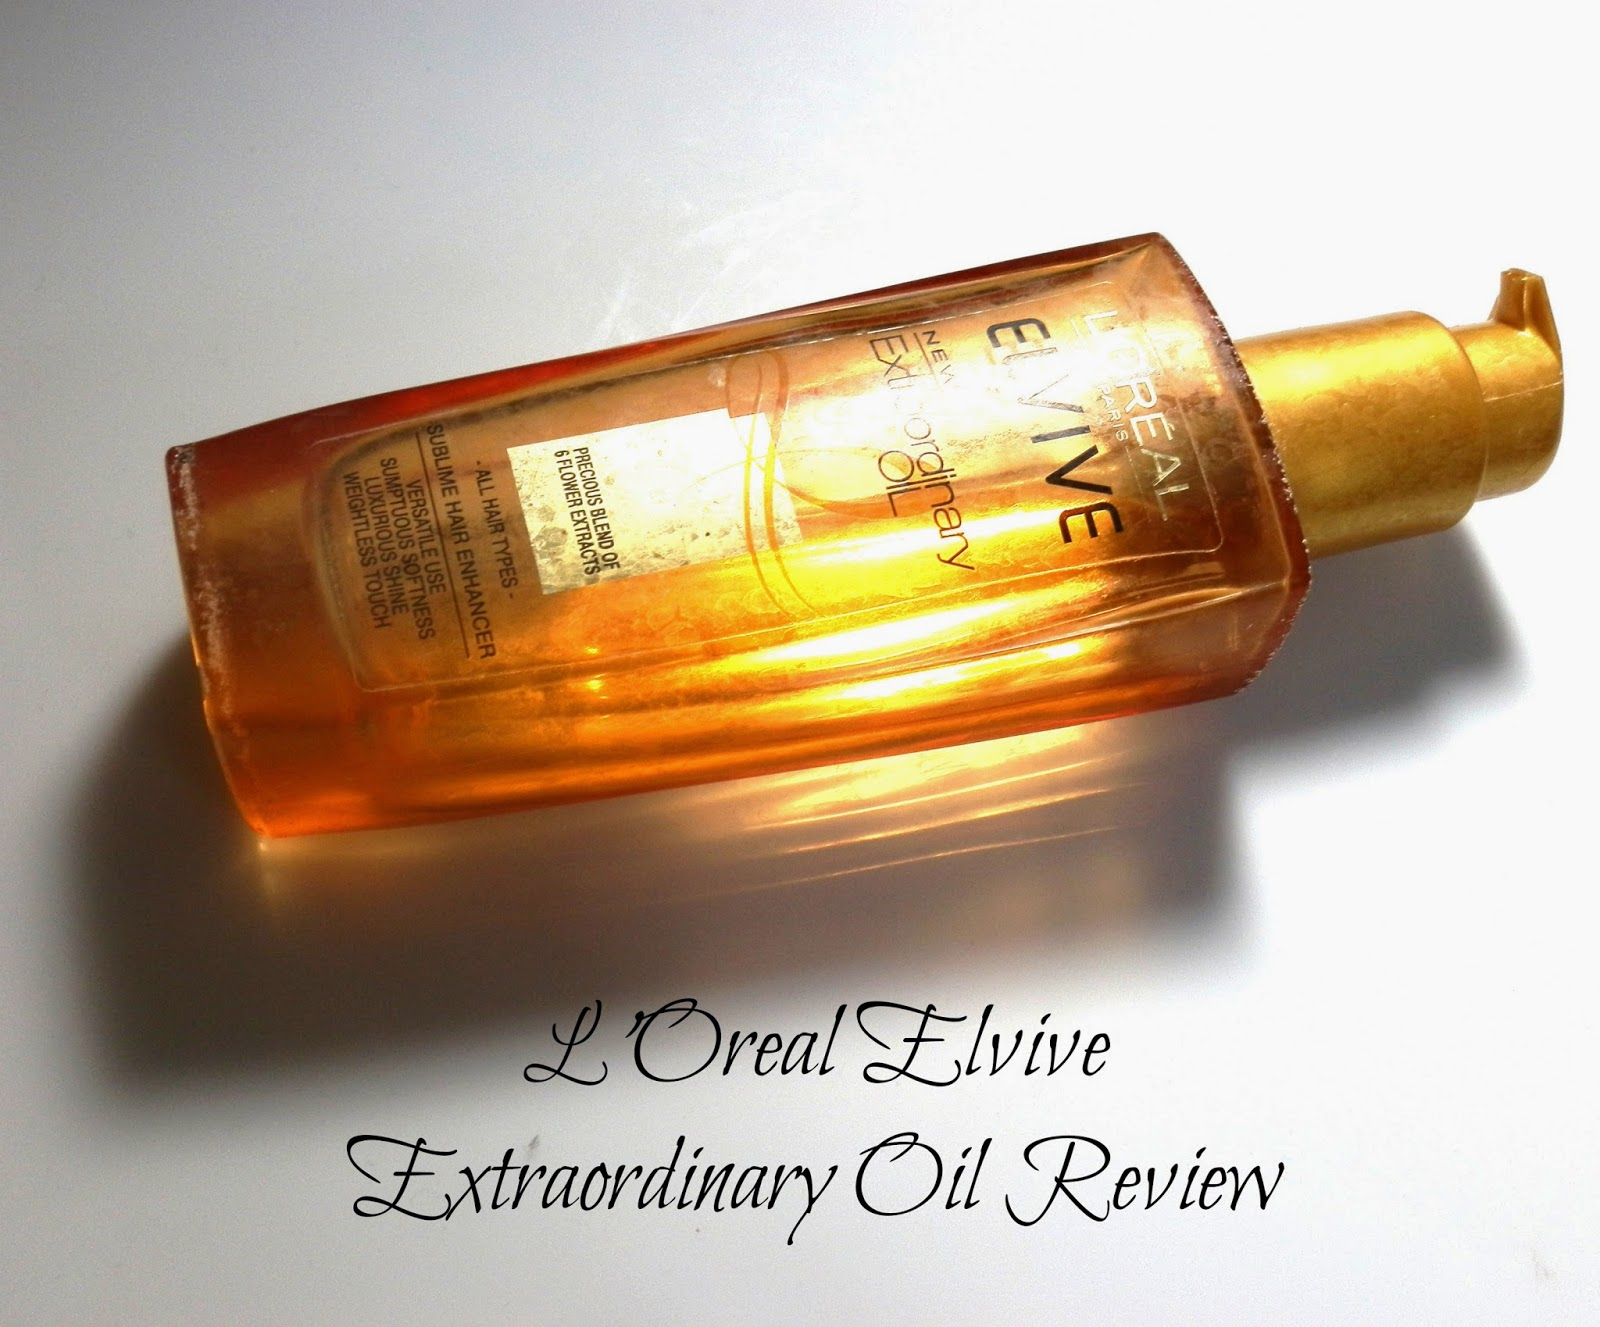 L'Oreal Elvive Extraordinary Oil Review